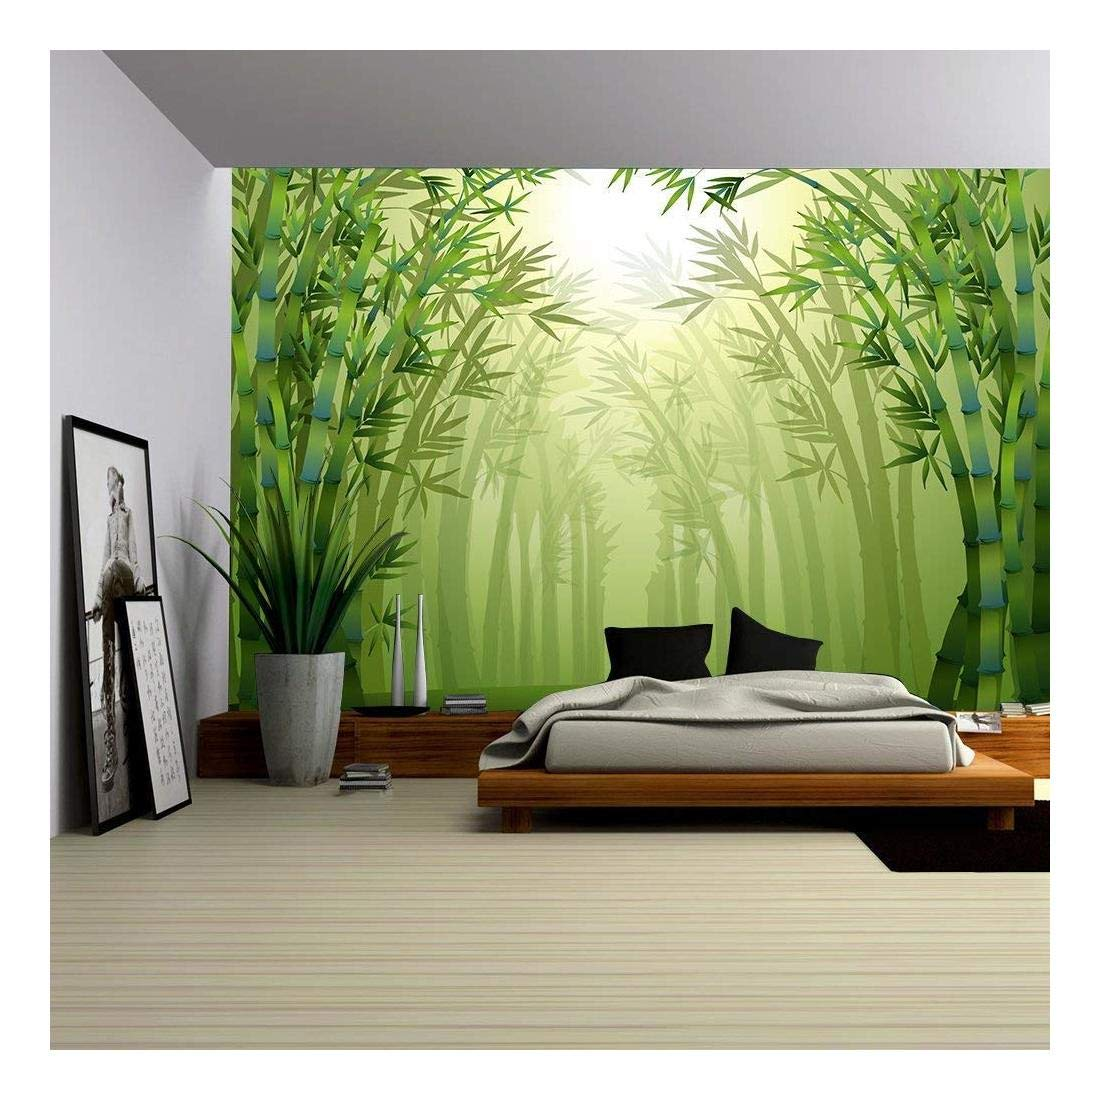 wall26 - Illustration of The Bamboo Trees Inside The Forest - Removable Wall Mural | Self-Adhesive Large Wallpaper - 100x144 inches by wall26 (Image #1)